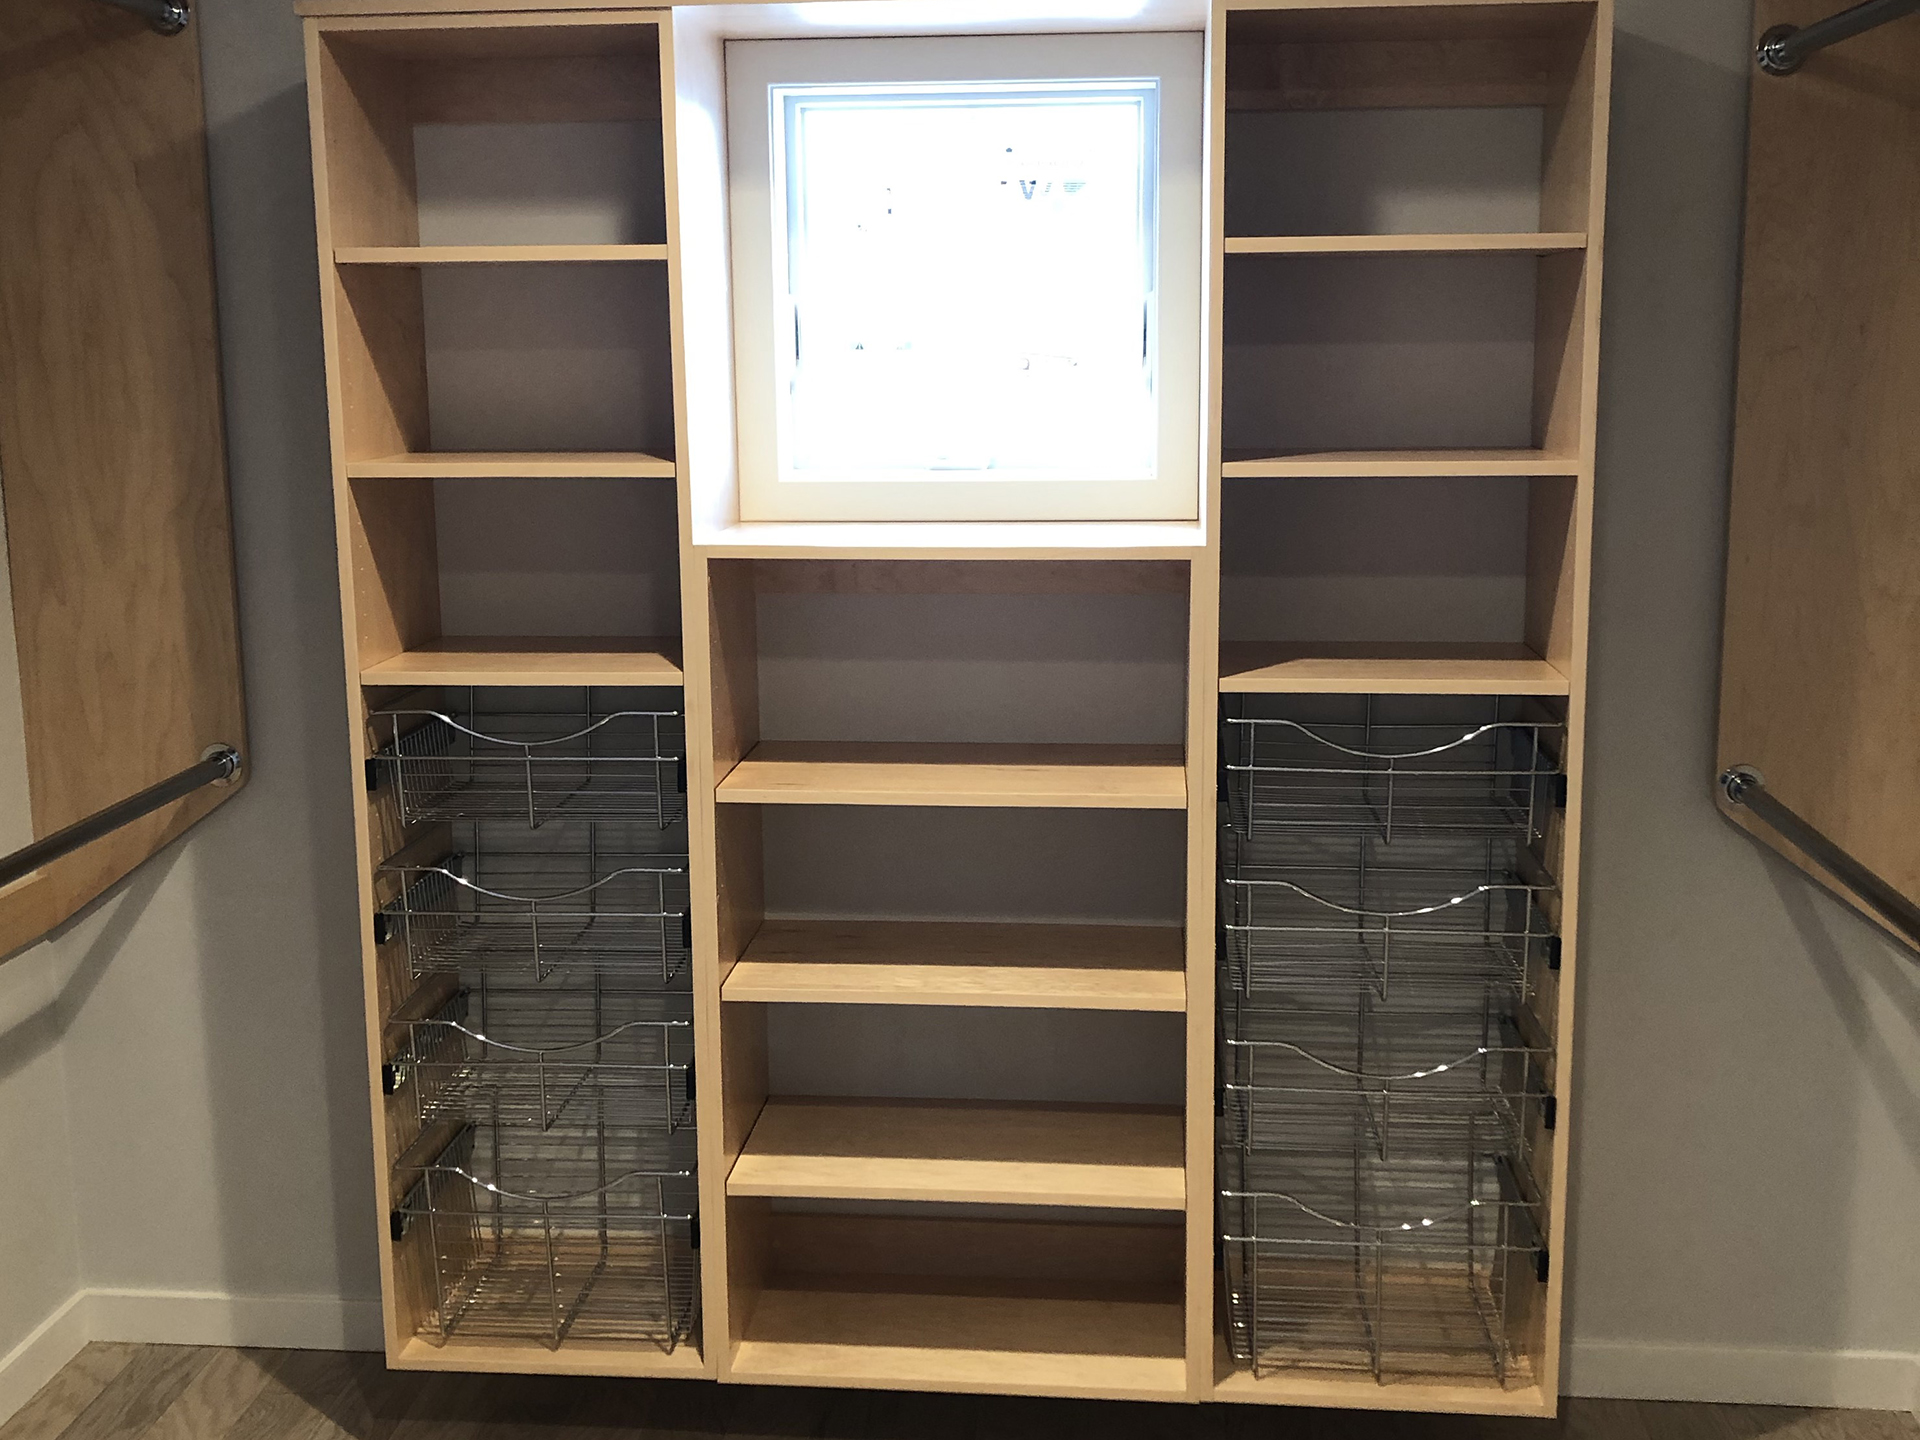 Master bedroom closet system with wire baskets